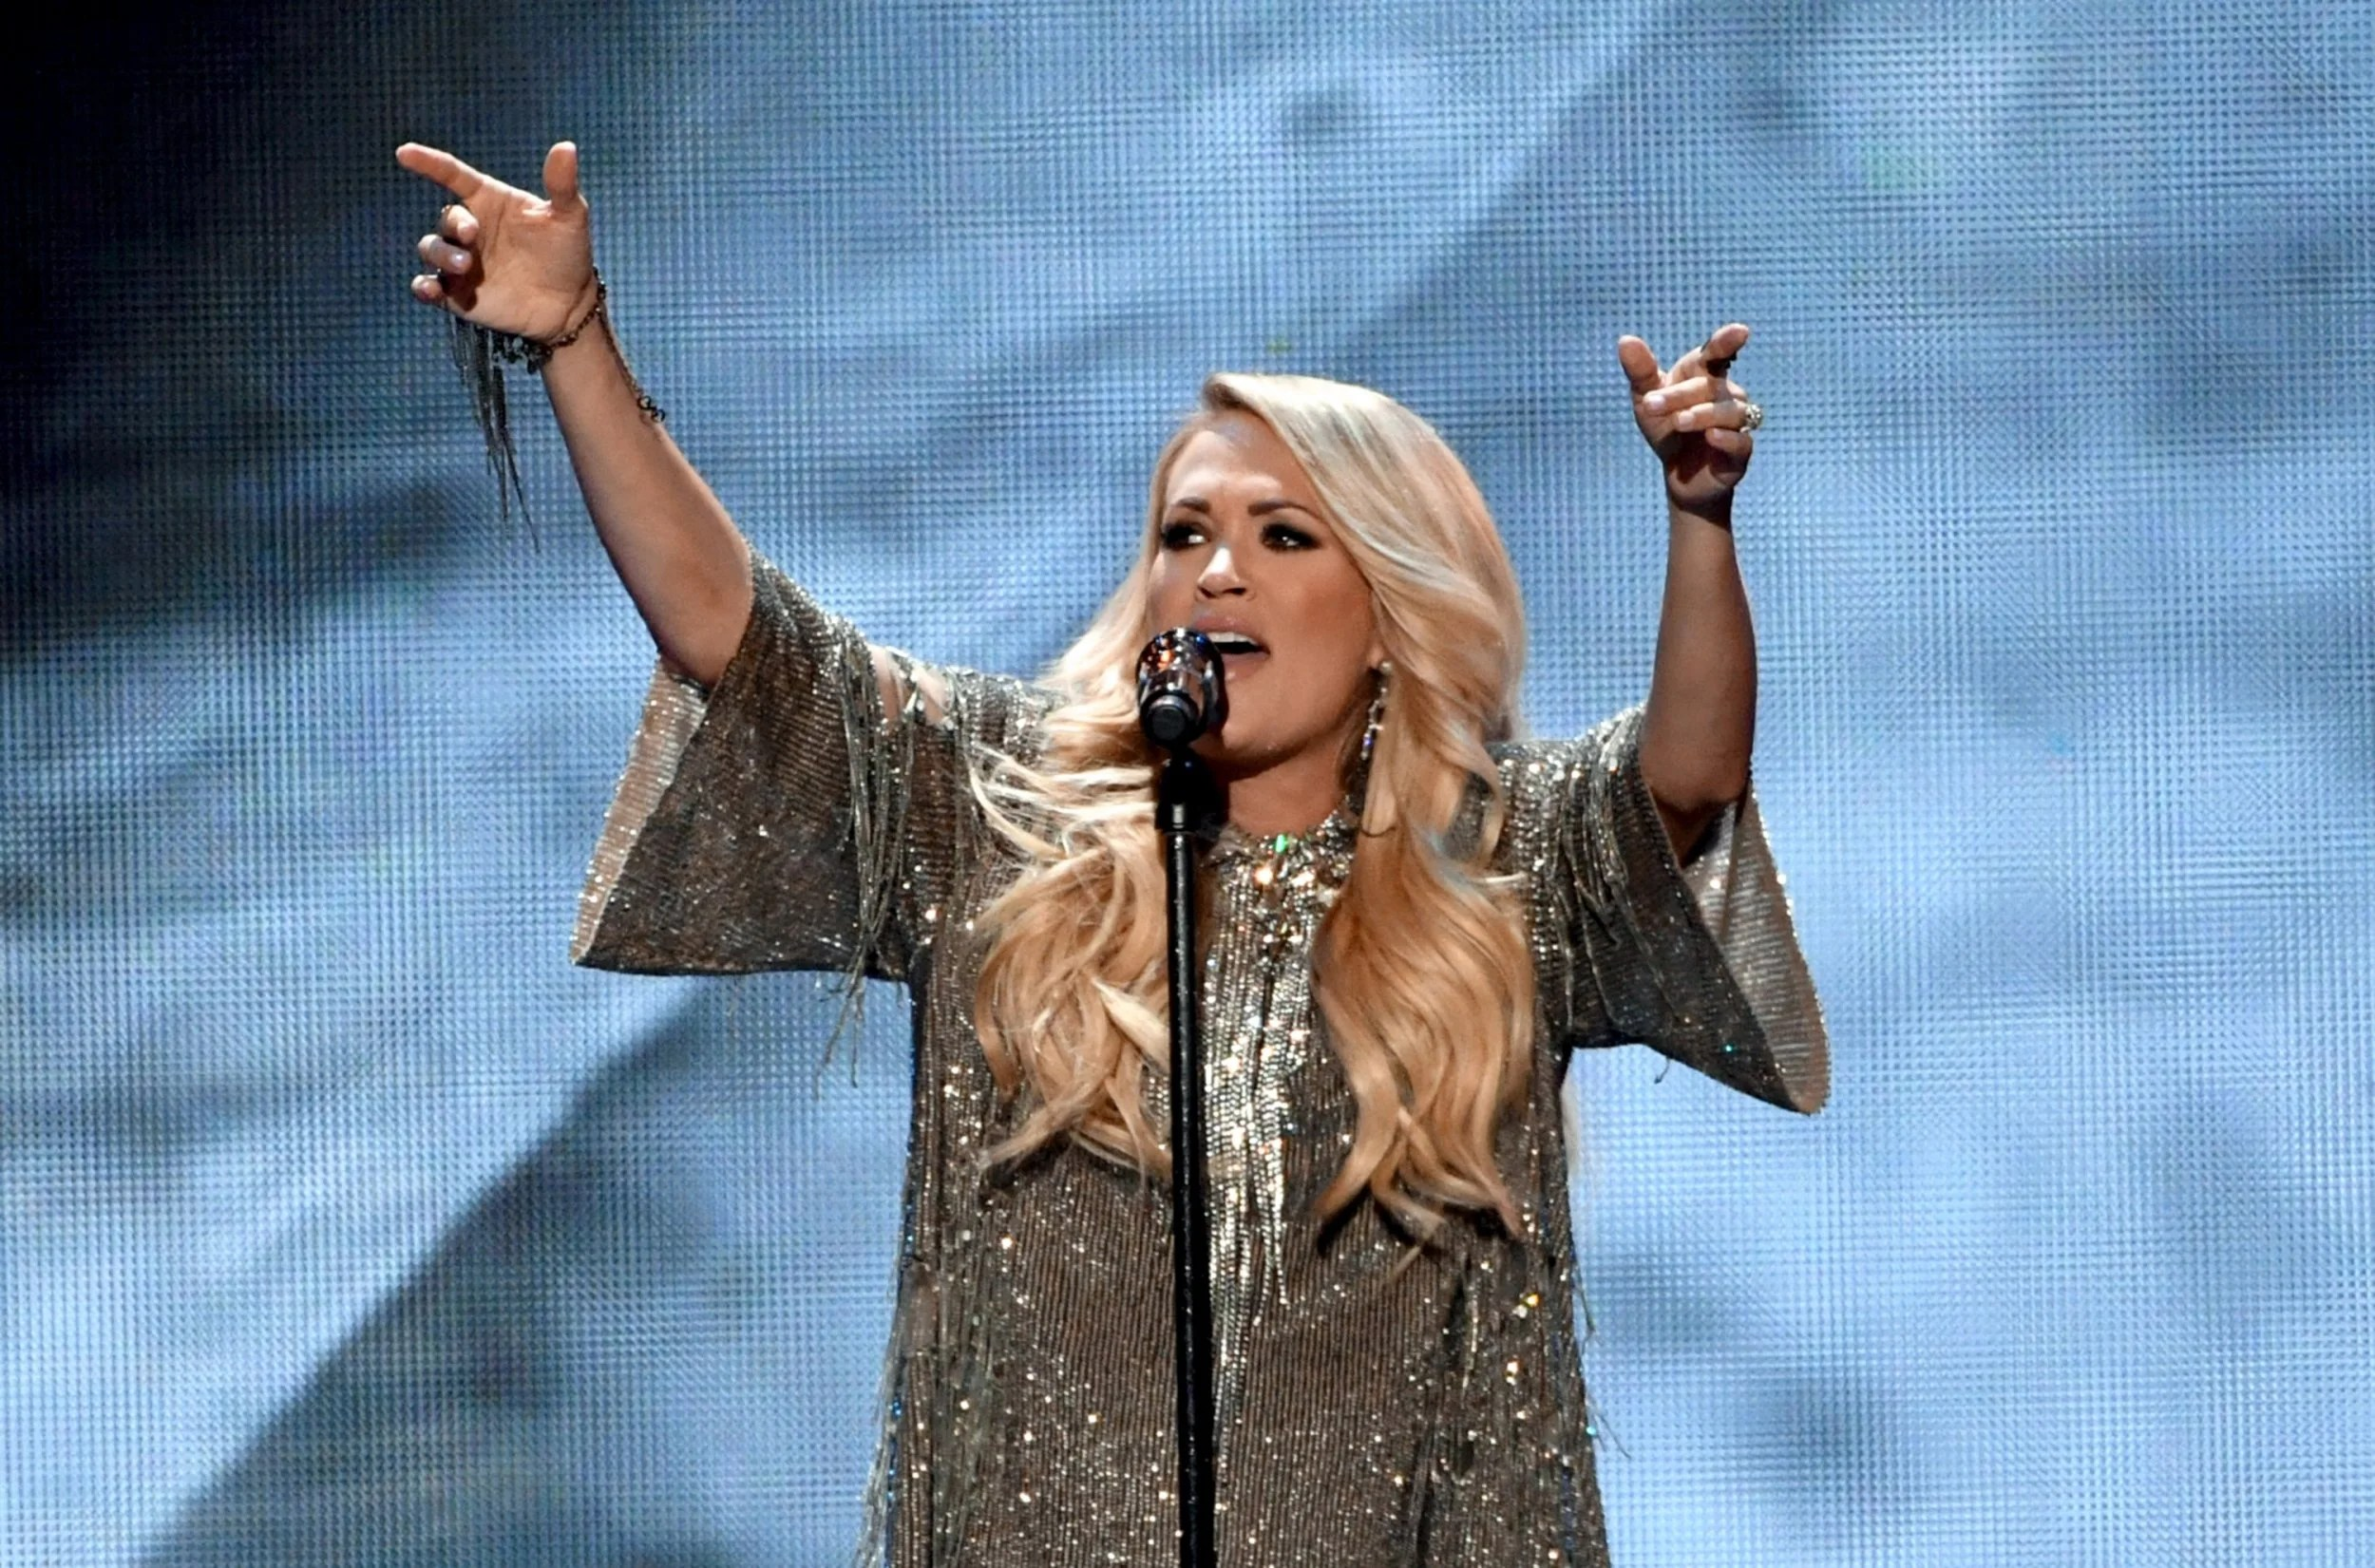 Carrie Underwood makes country music history with new